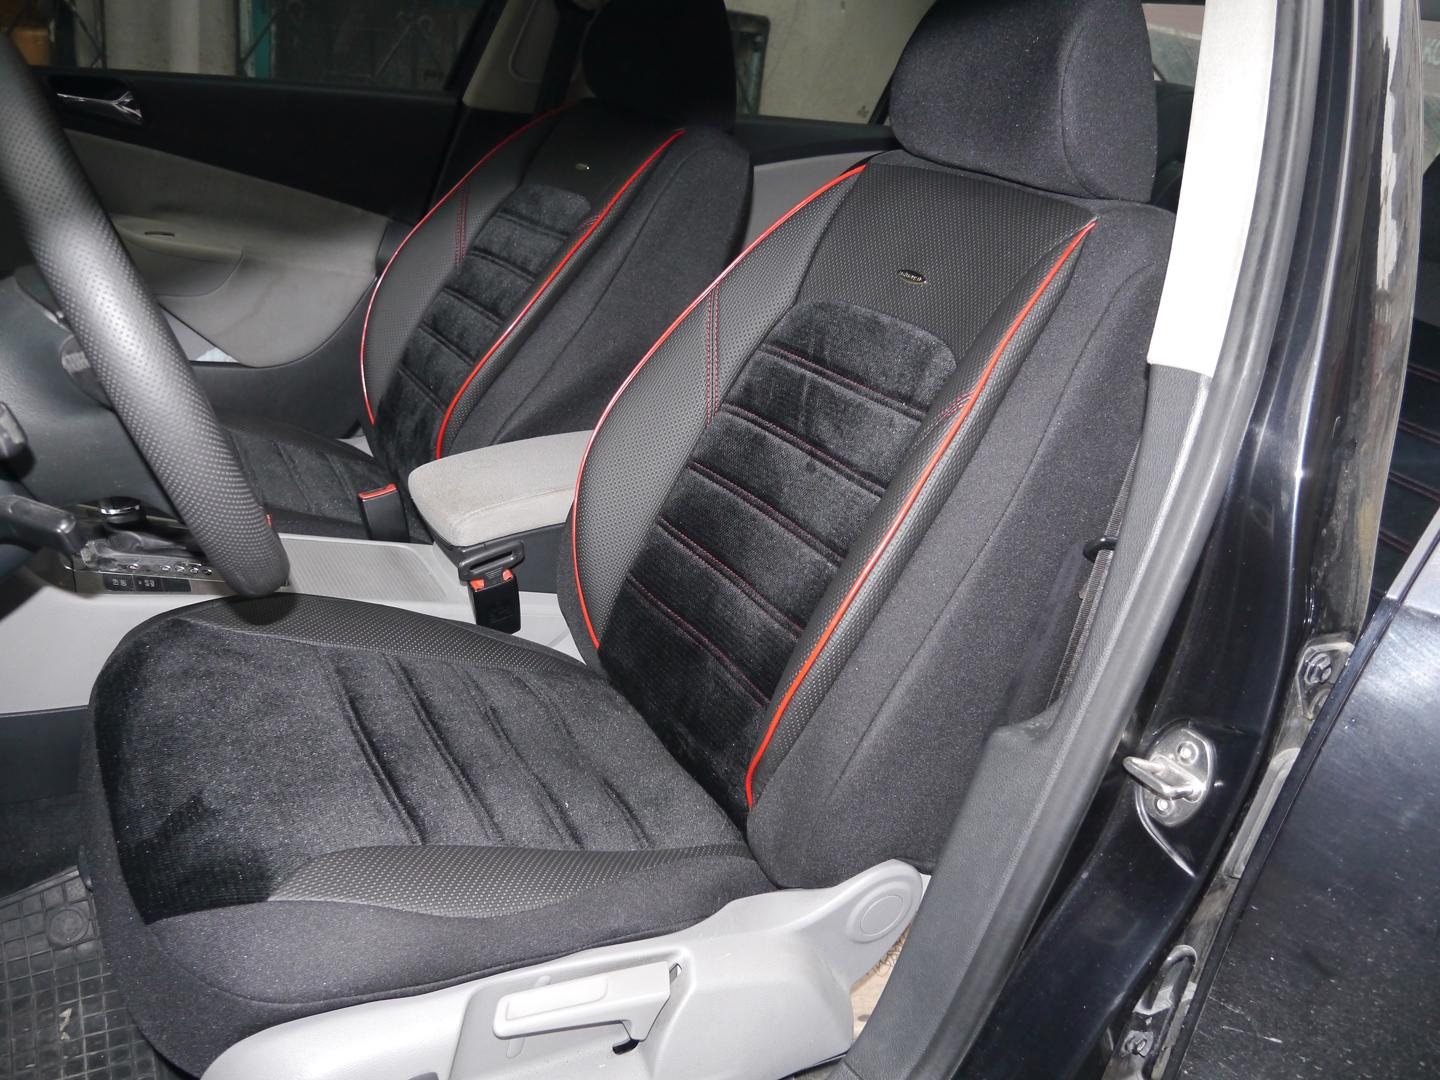 Car Seat Covers Protectors For Bmw 5 Series Touring E39 No4